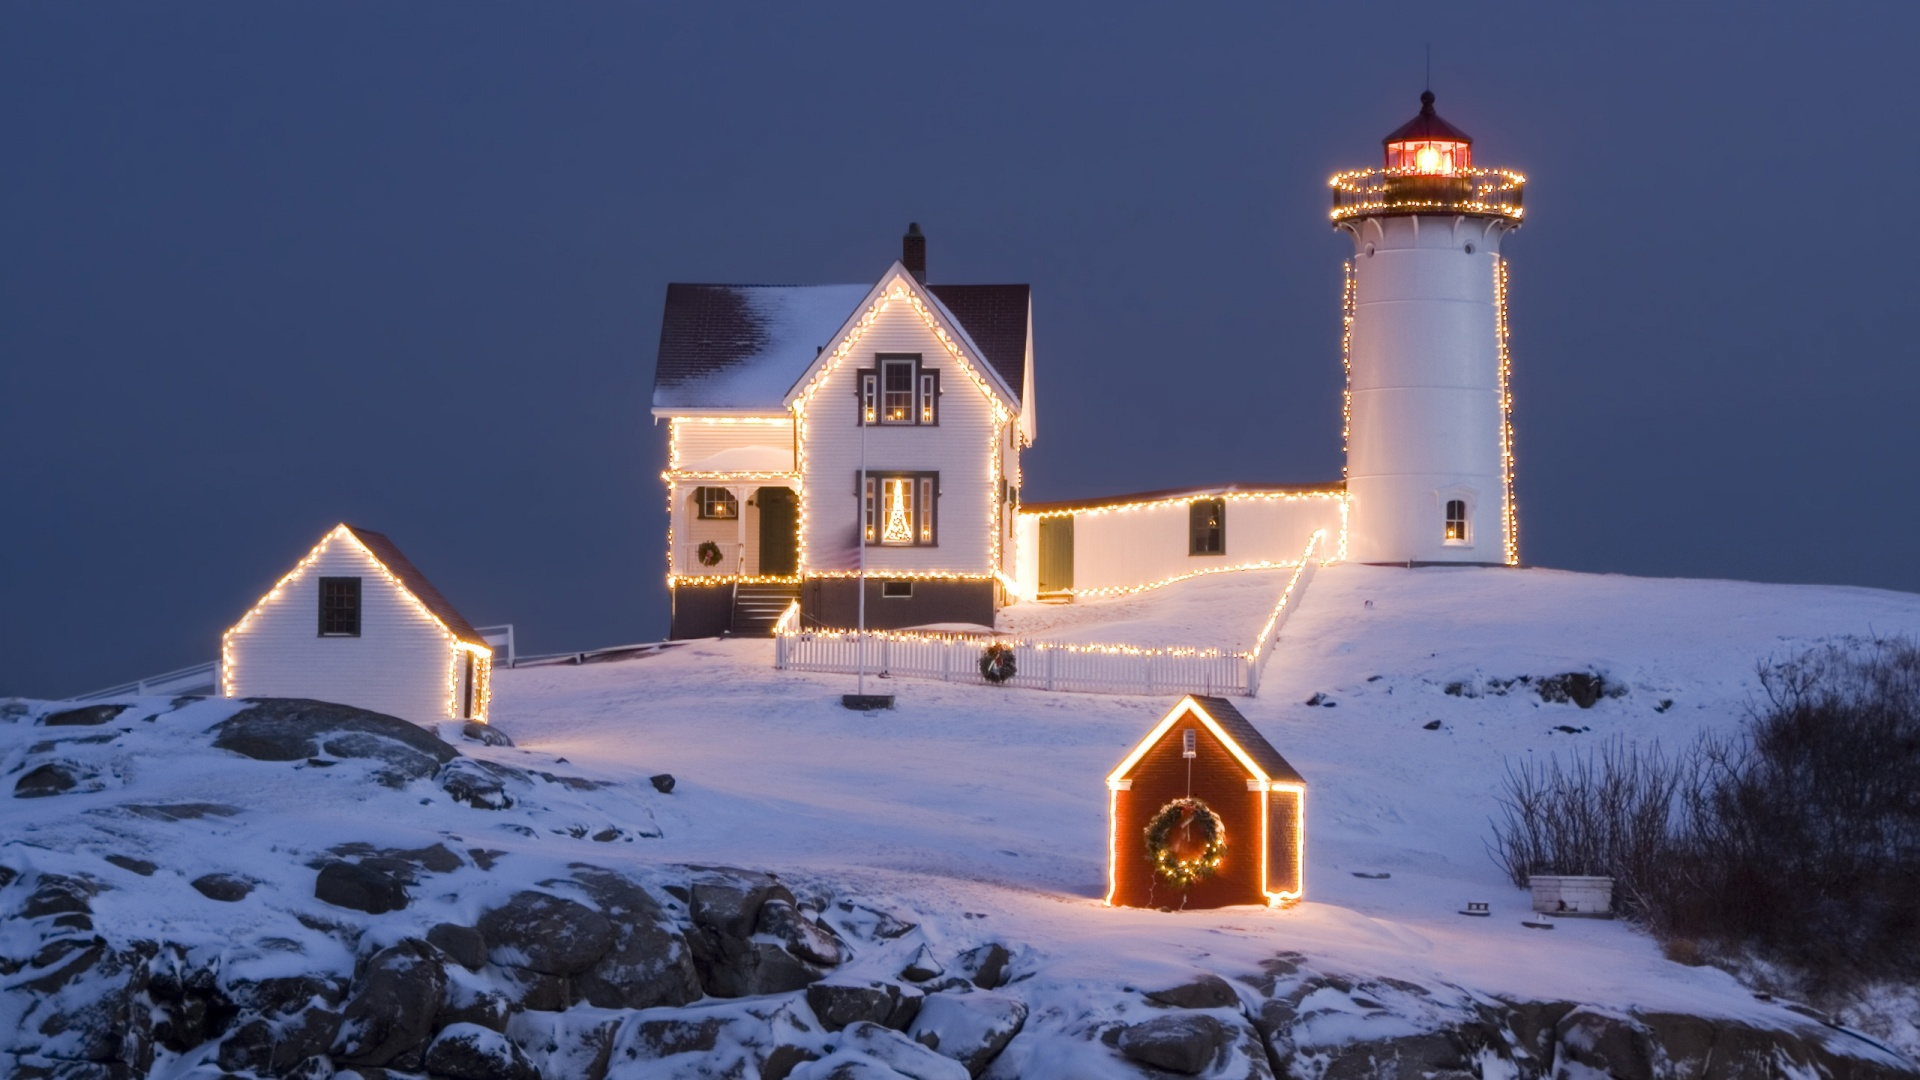 MX-912 Lighthouse Wallpapers, Lighthouse Adorable Desktop Images ...